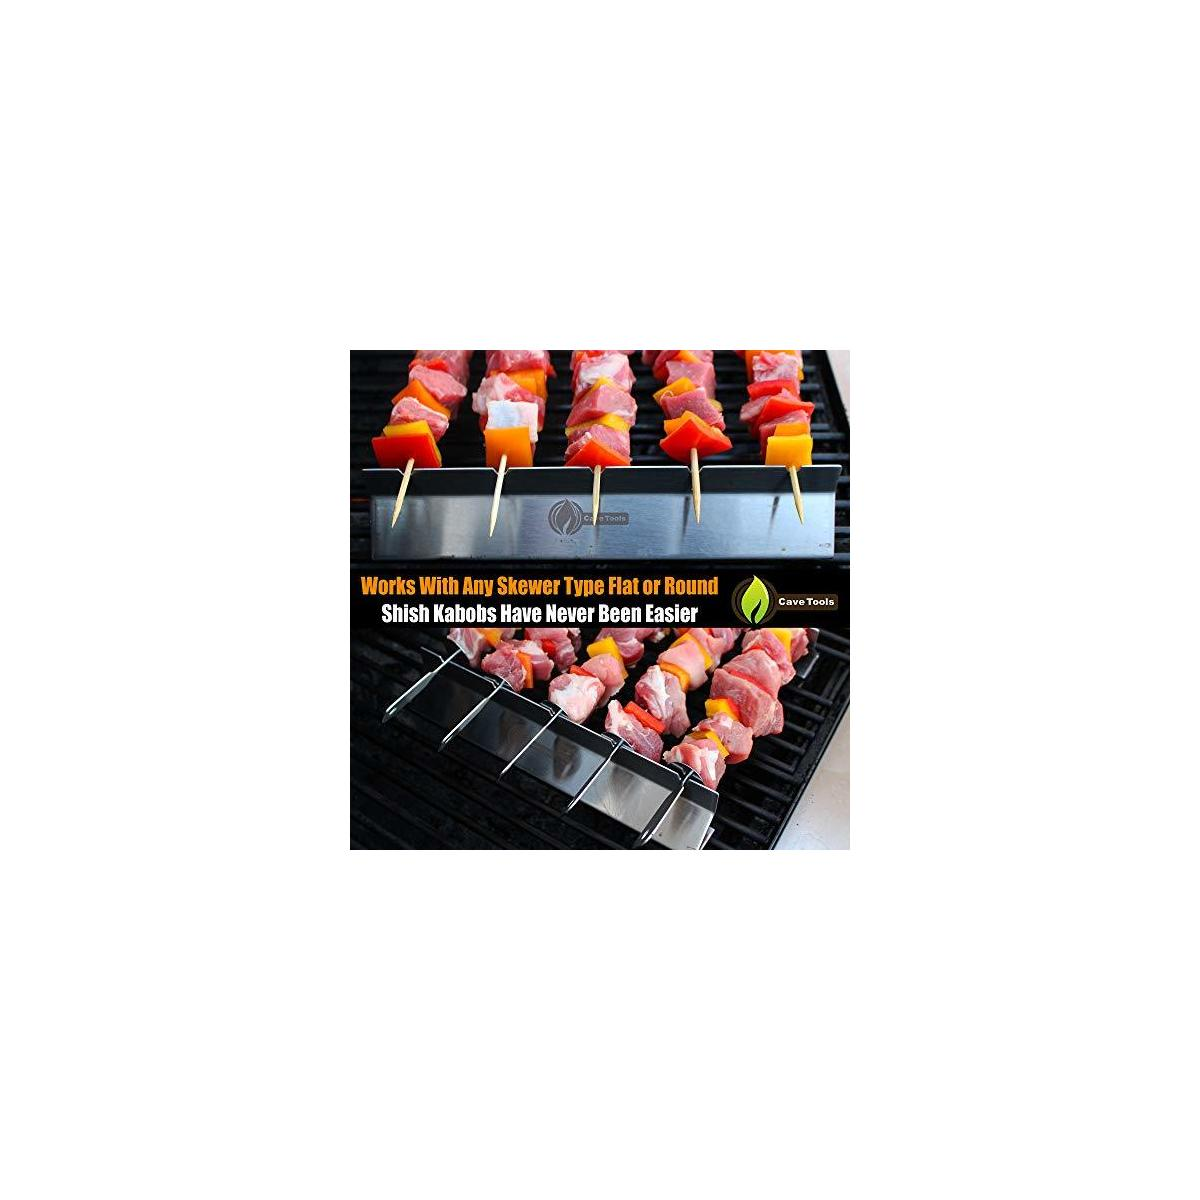 Cave Tools Kabob Rack for Grill Oven - Universal Fit BBQ Skewers Kabab Maker - Stainless Steel Wood Bamboo Metal Flat or Round - Shish Kebabs on Barbecue Made Easy Grilling Accessories Set